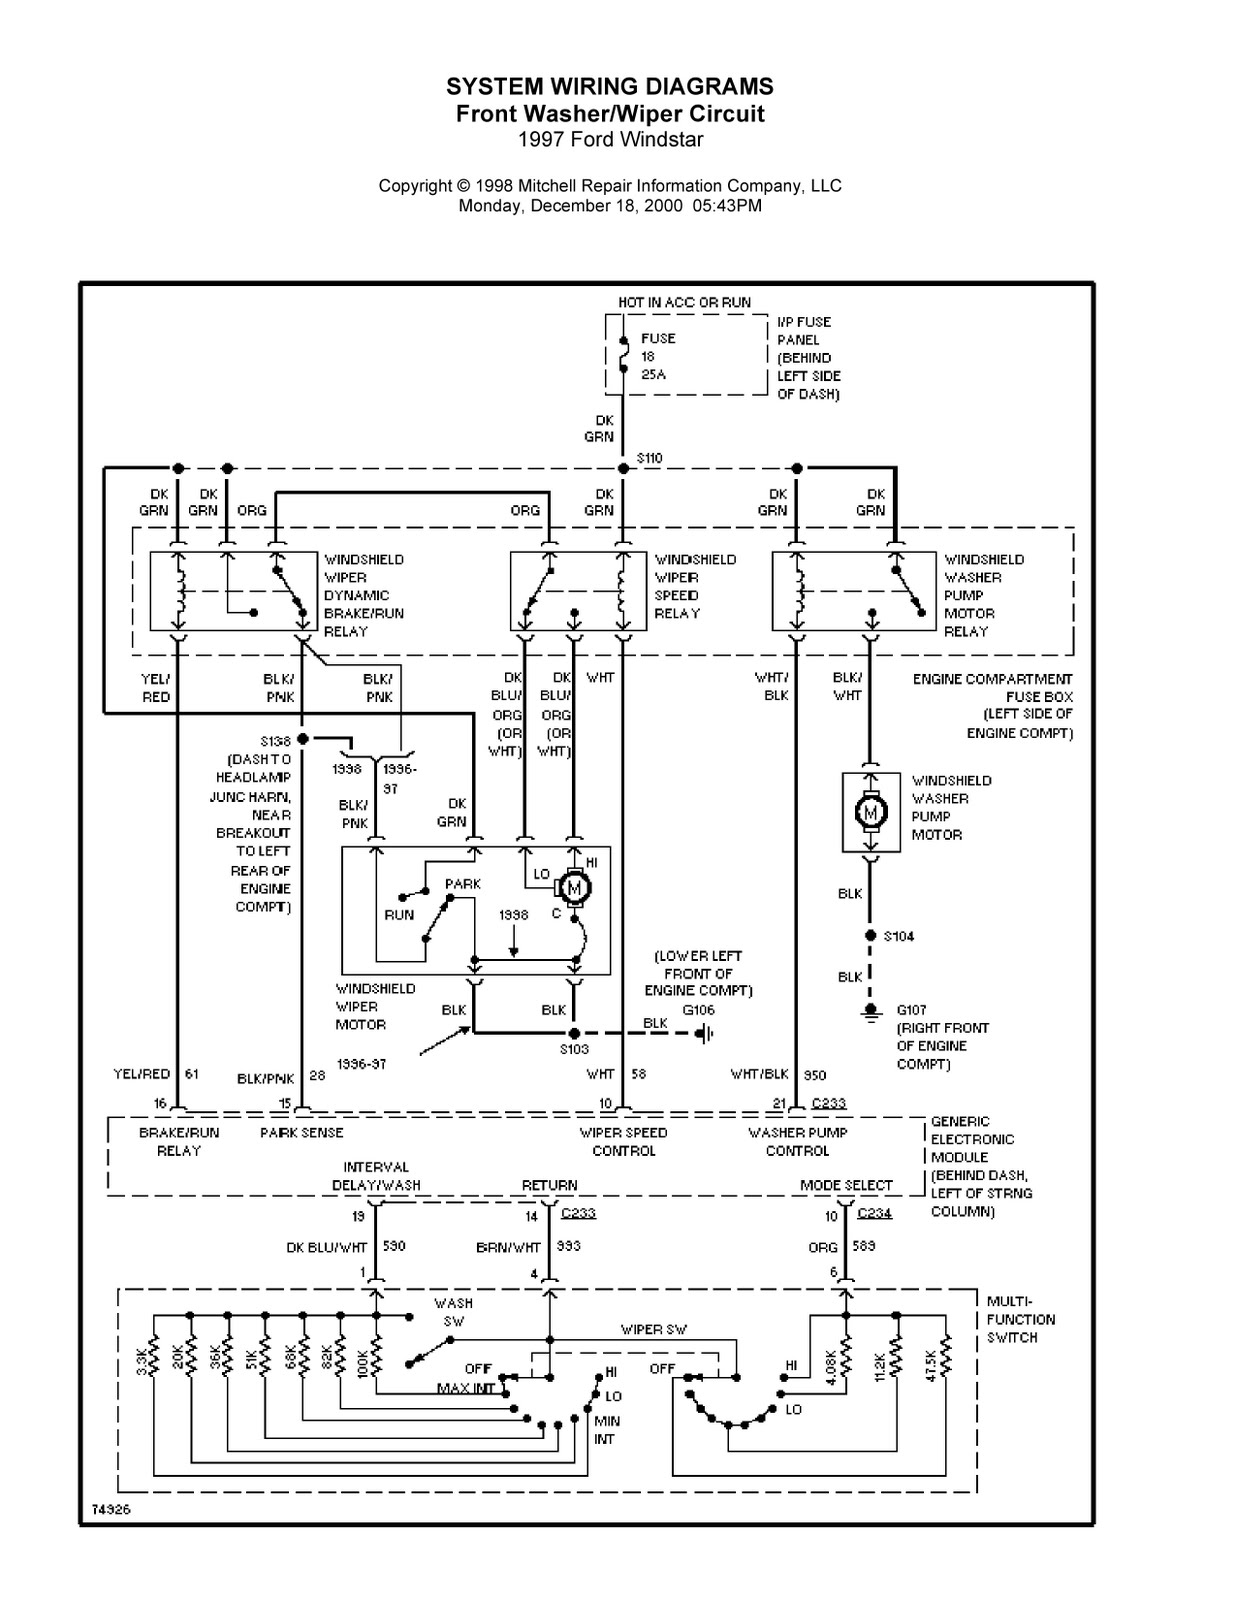 2002 windstar mirror wiring diagram wiring diagrams rh gregorywein co ford ranger 3 0 wiring  [ 1236 x 1600 Pixel ]